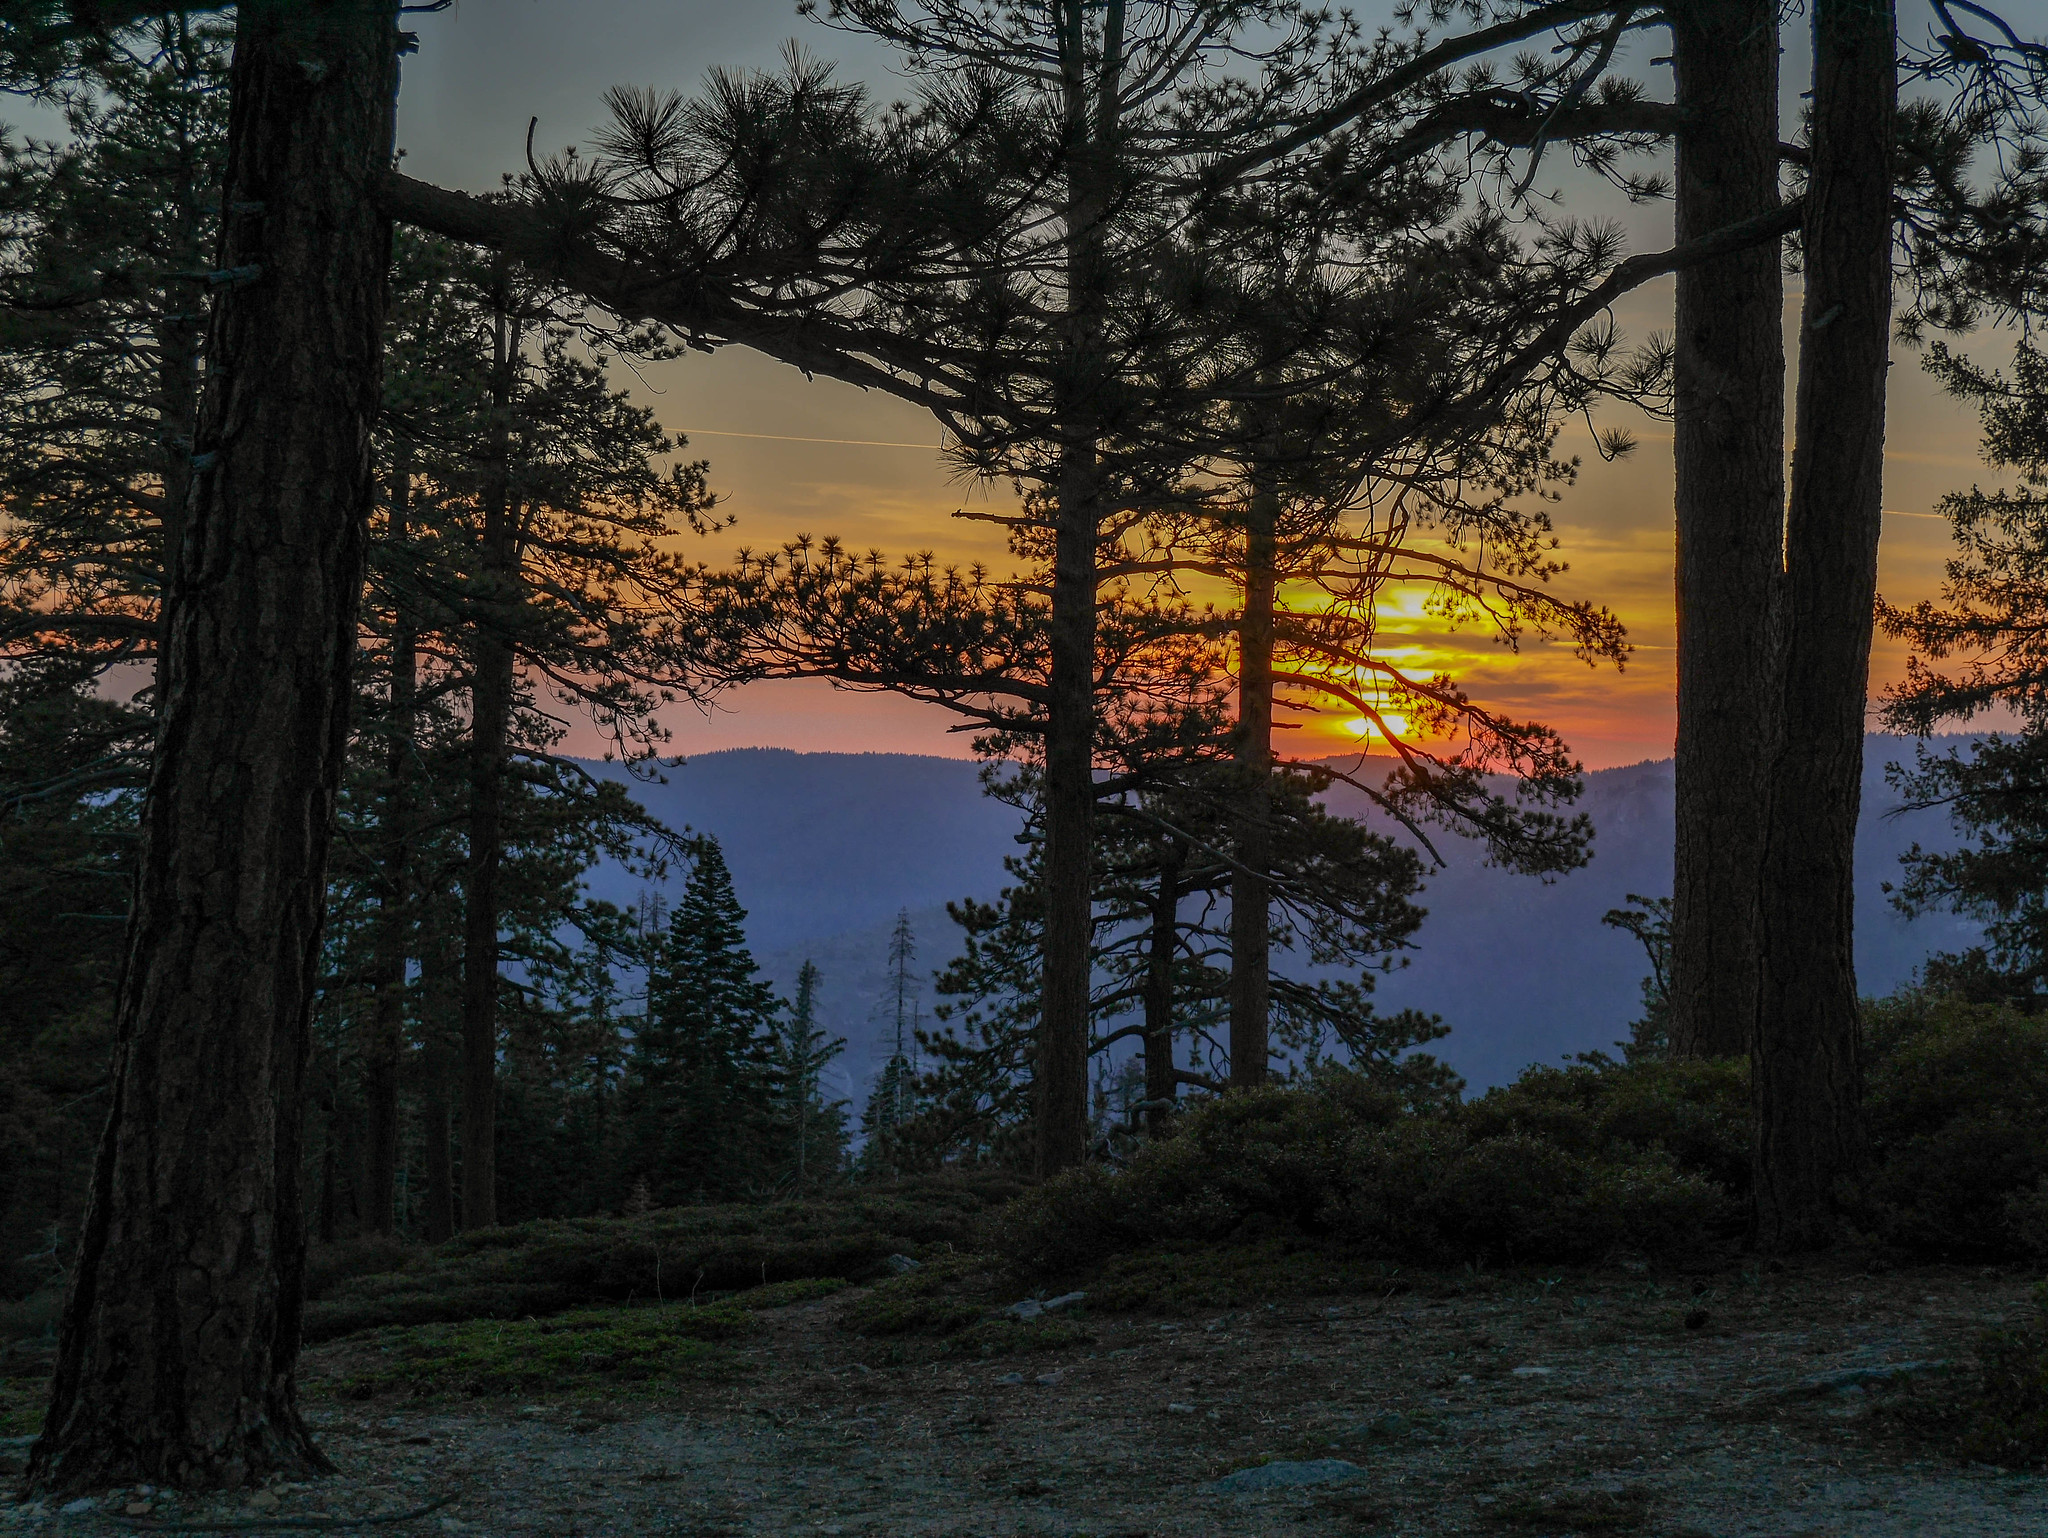 Sunset from camp at Crocker Point